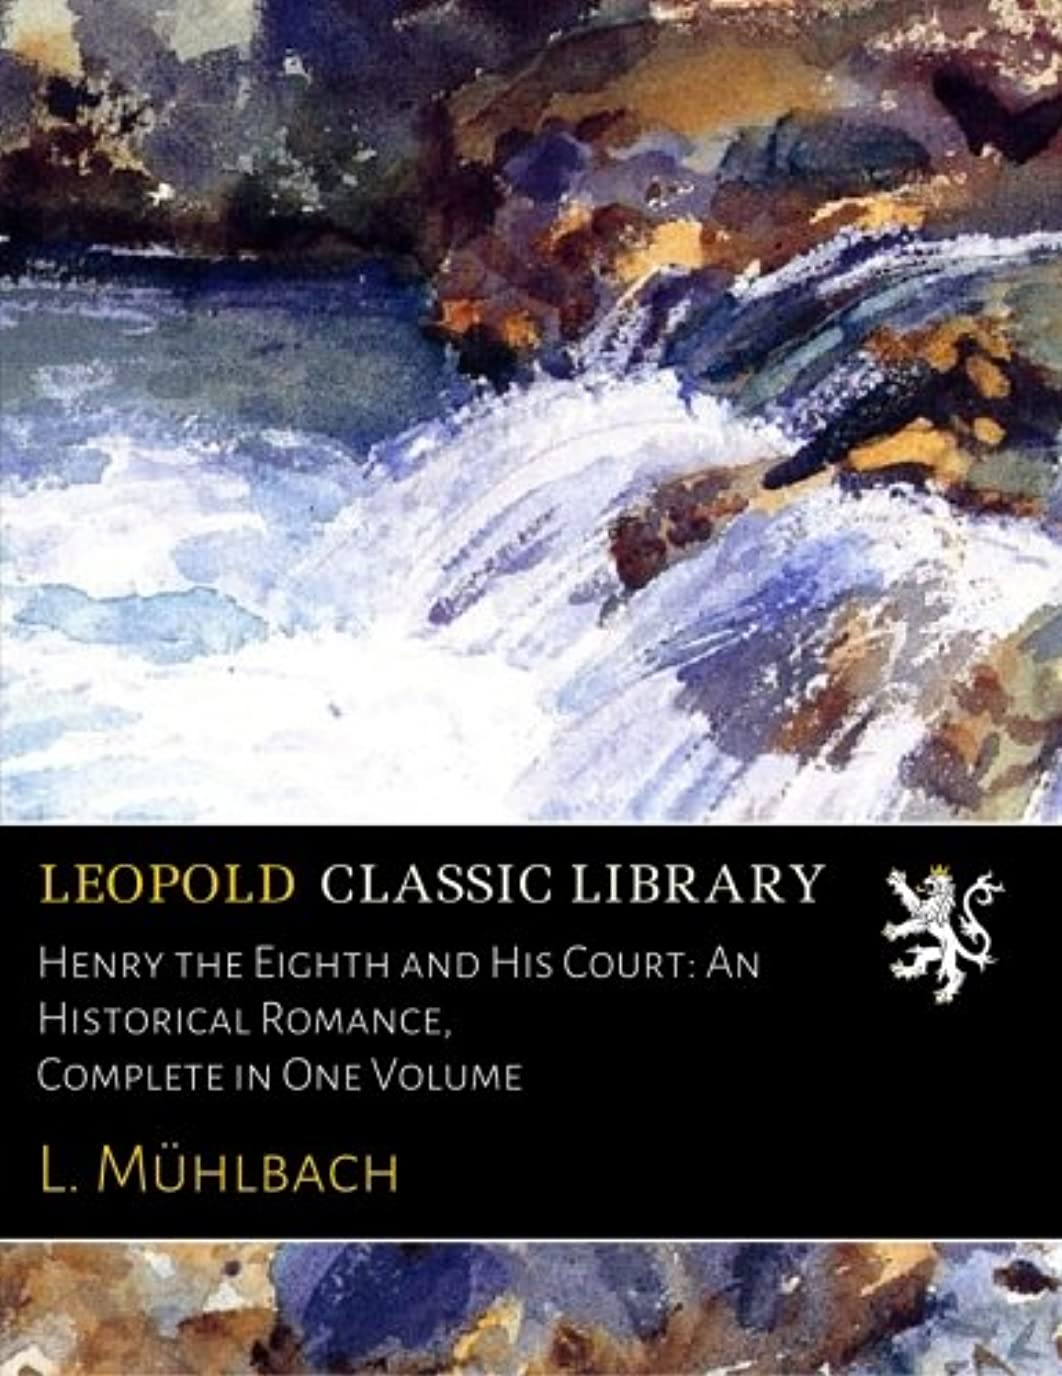 Henry the Eighth and His Court: An Historical Romance, Complete in One Volume